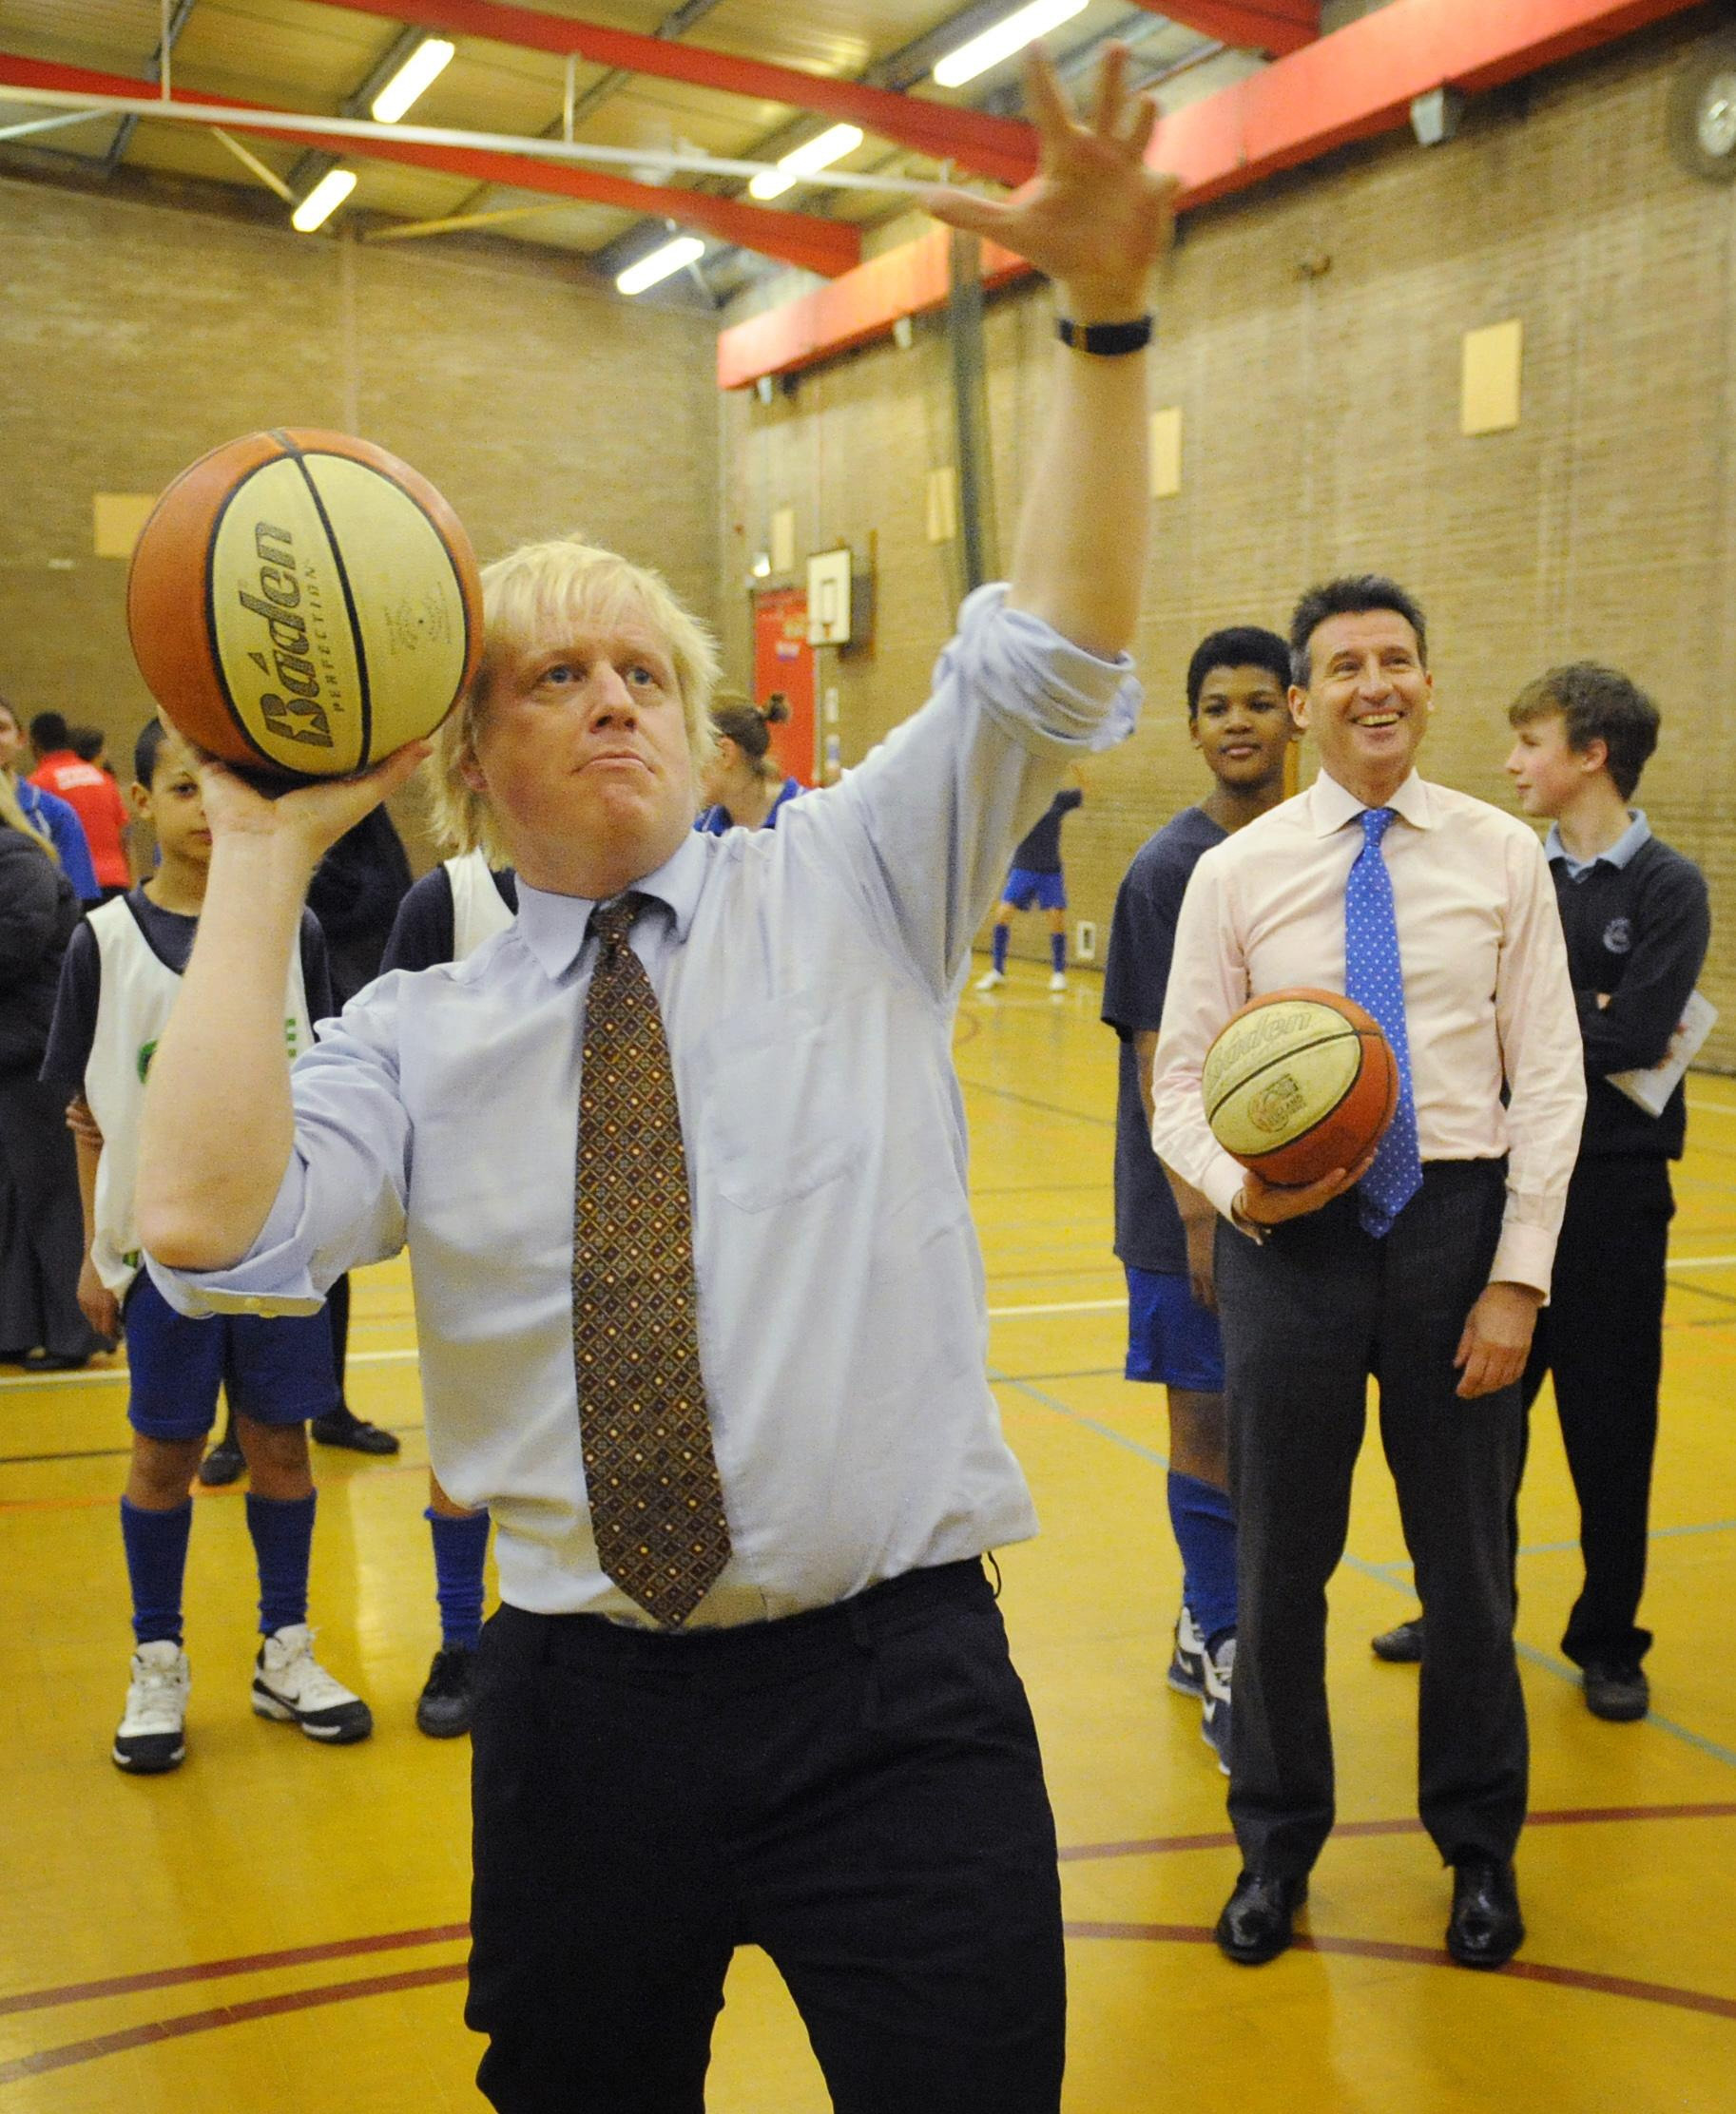 London 2012 Chairman Lord Coe (right) watches as London Mayor Boris Johnson plays basketball with pupils from Chiswick Community School in west London where they told the school how many Olympic tickets they would receive through the London 2012 Ticketshare scheme.